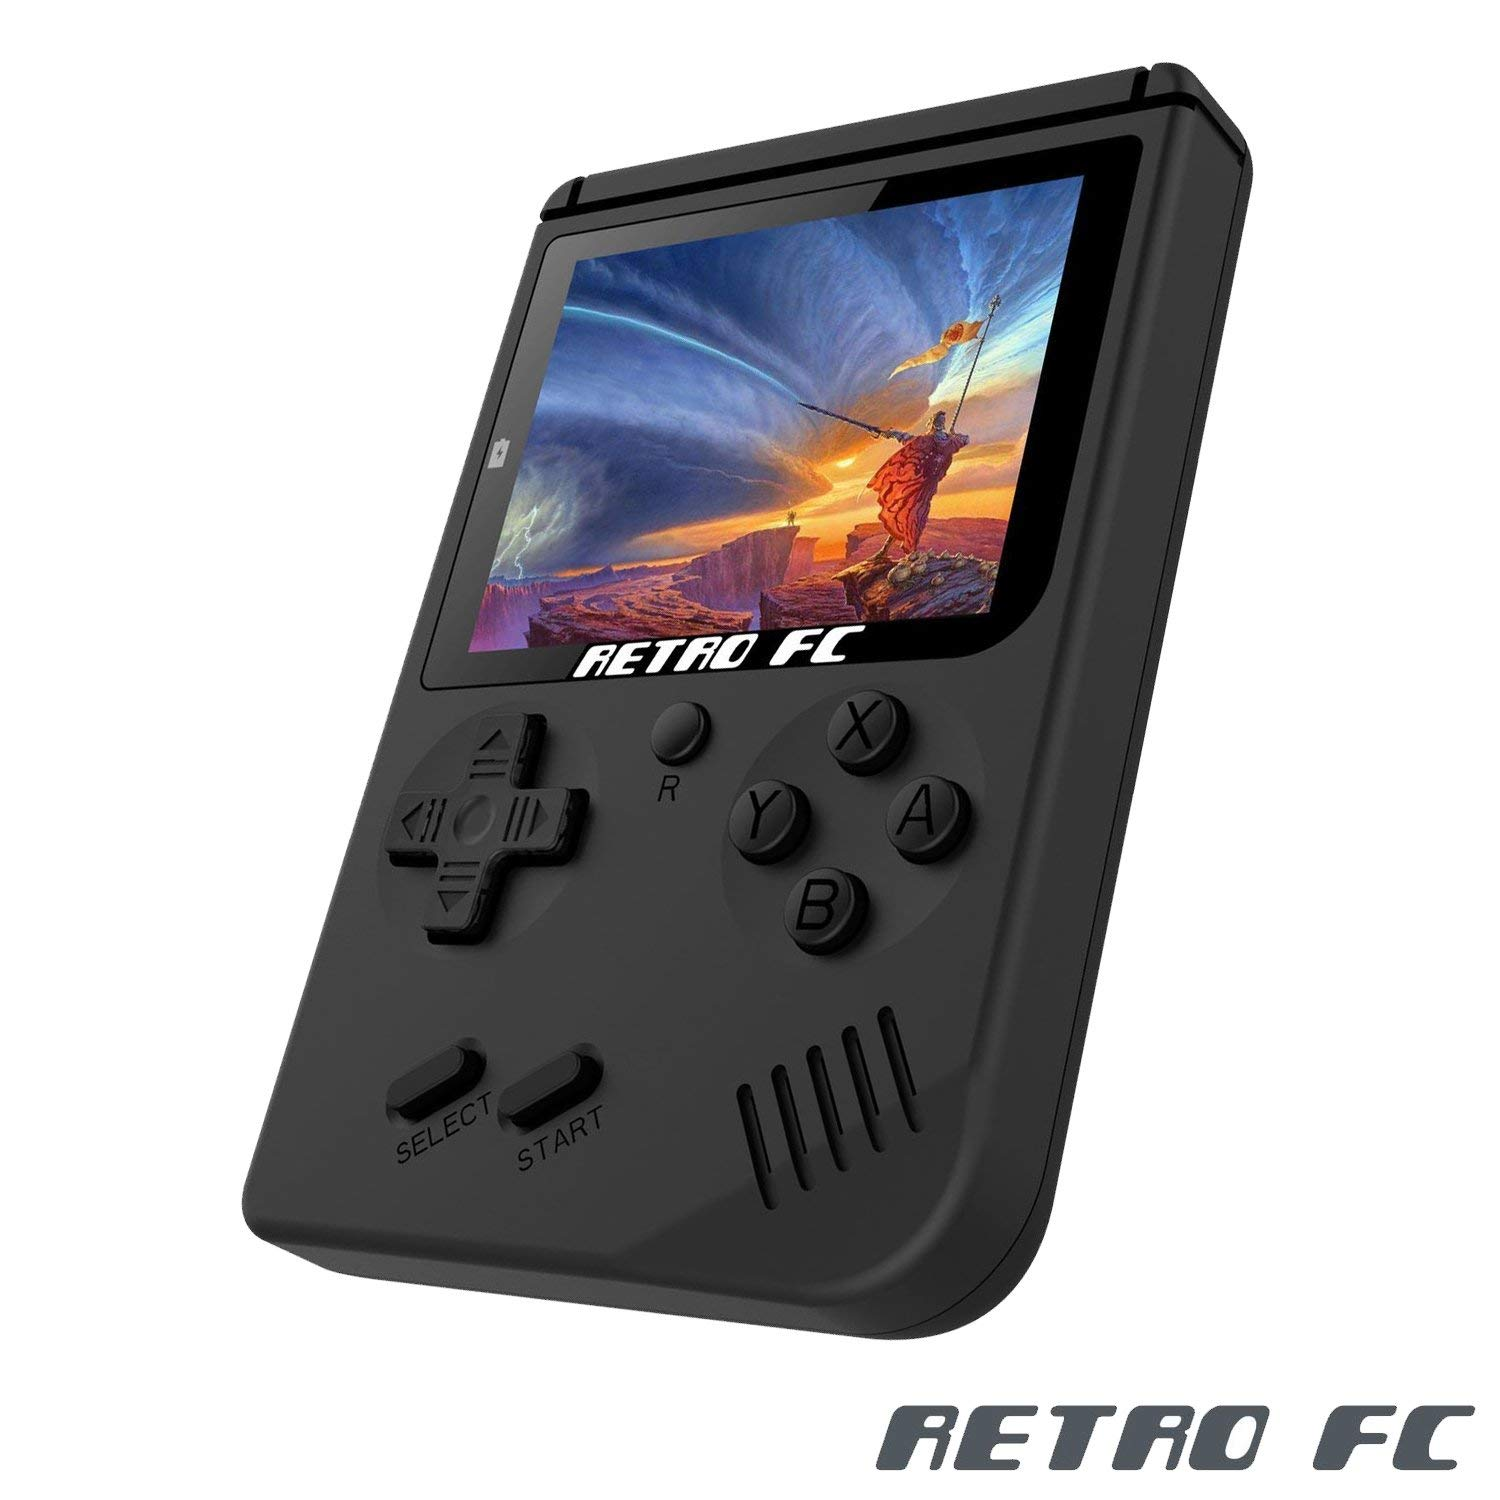 Zorx Nostalgic 8 Bit Retro Mini Pocket Handheld Game Player Video Game Console Built-in 168 Classic Games Gift for Children